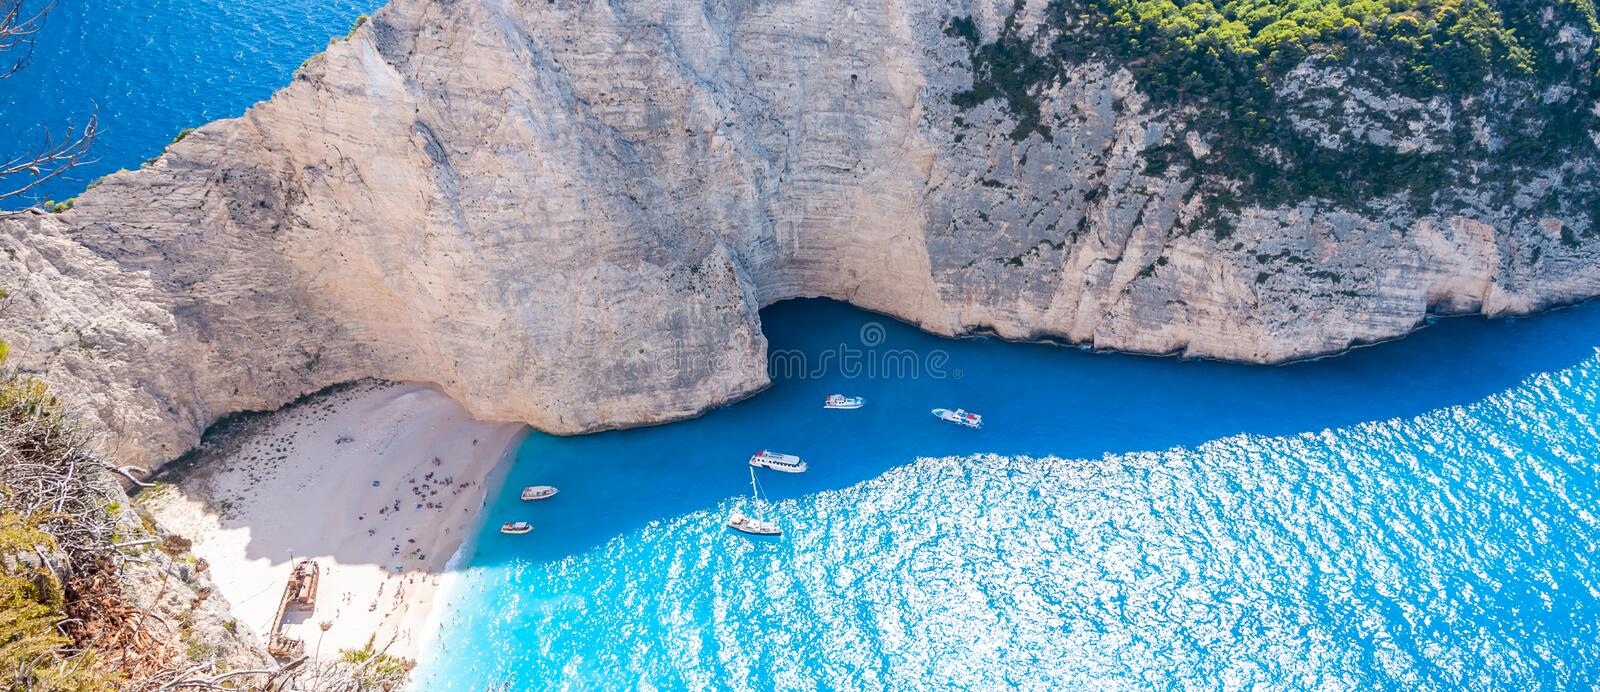 Zakynthos Island, Greece. A pearl of the Mediterranean with beaches and coasts suitable for unforgettable sea holidays royalty free stock image